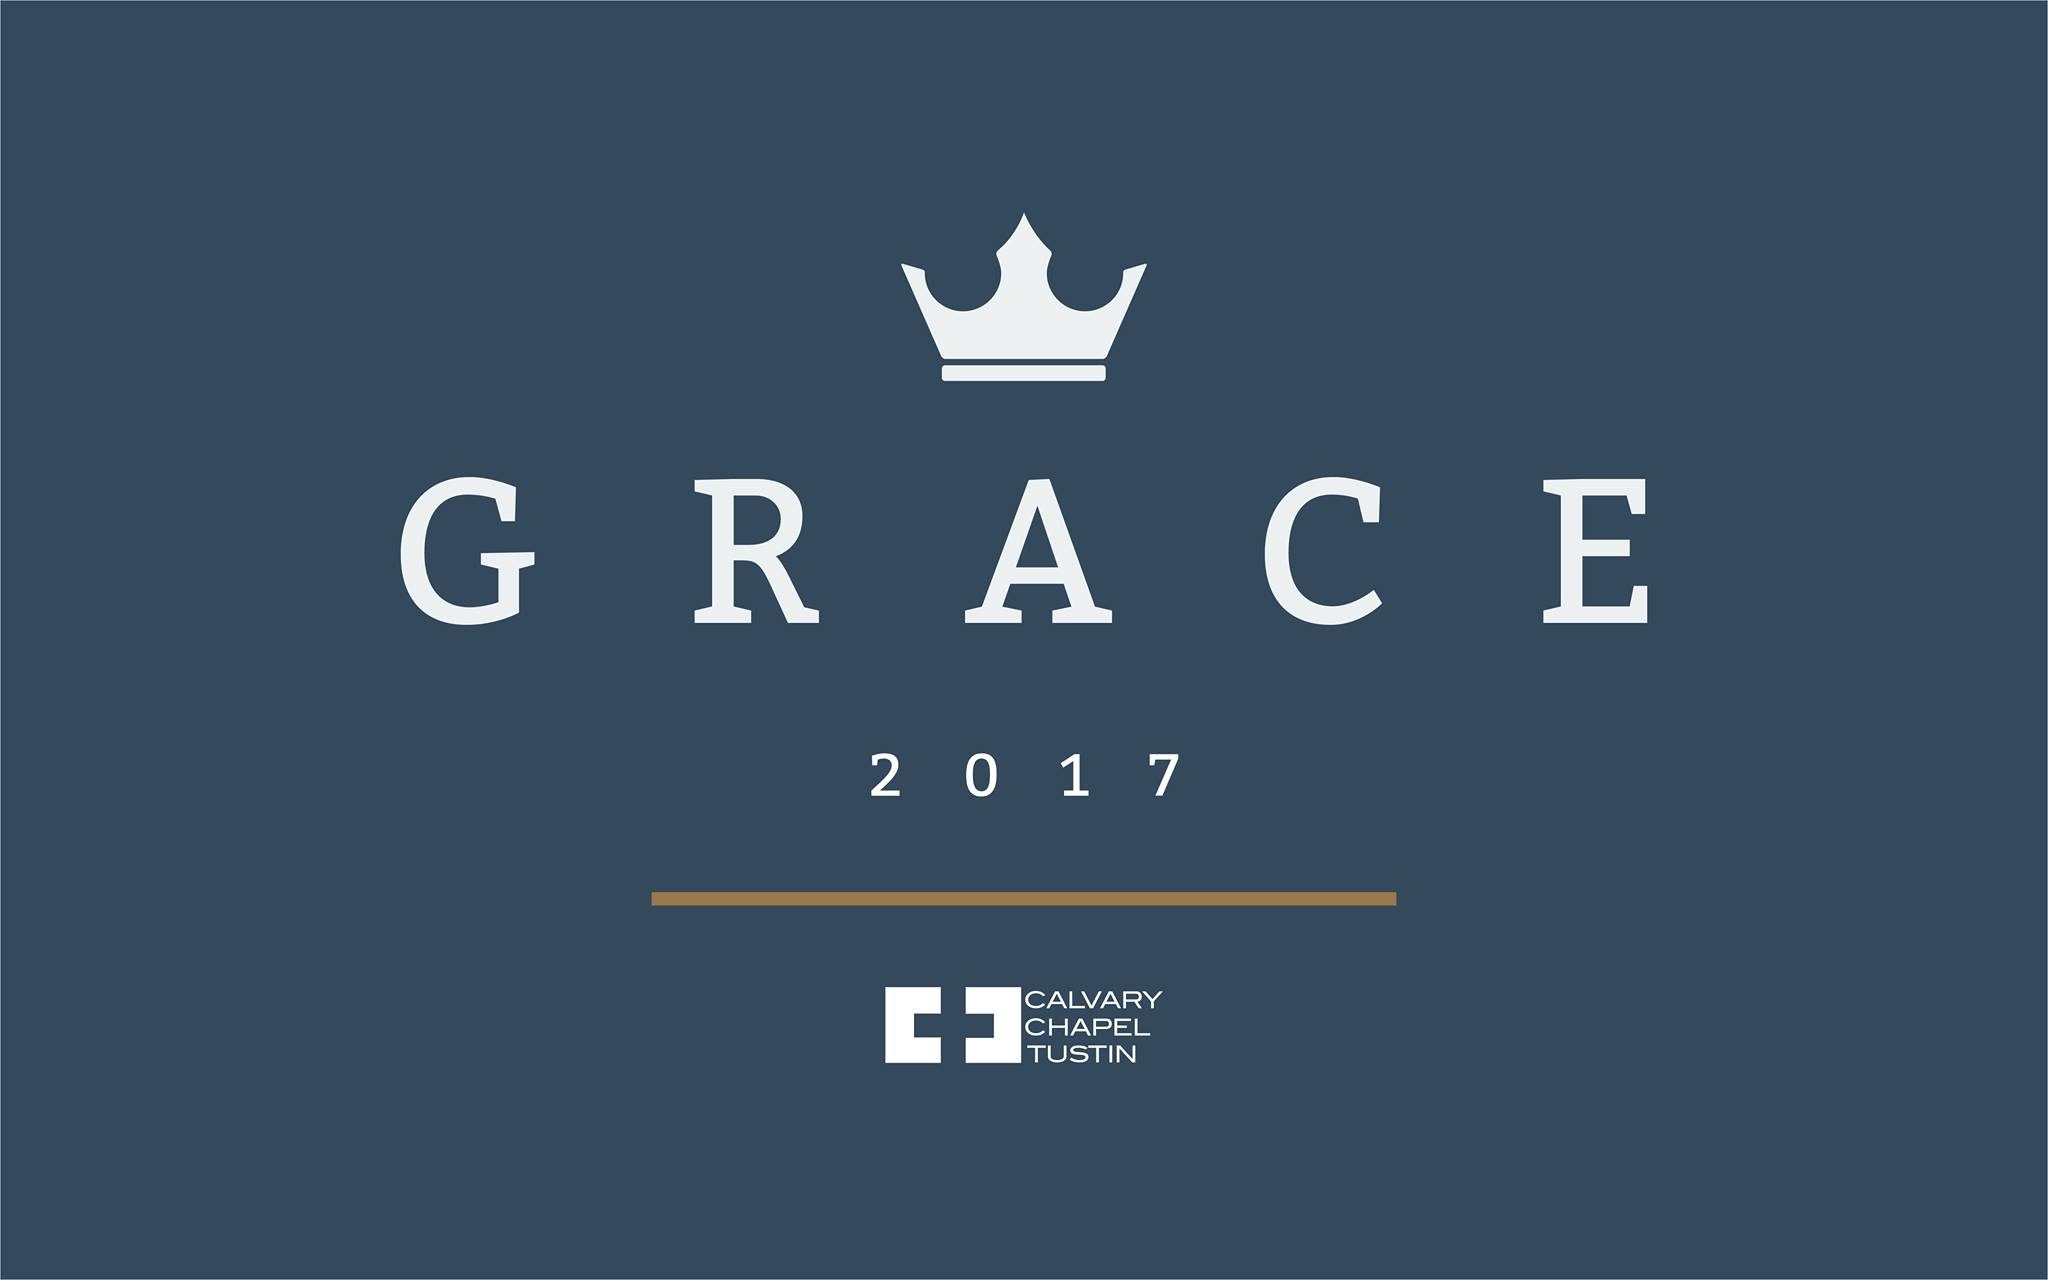 The Fullness of Grace